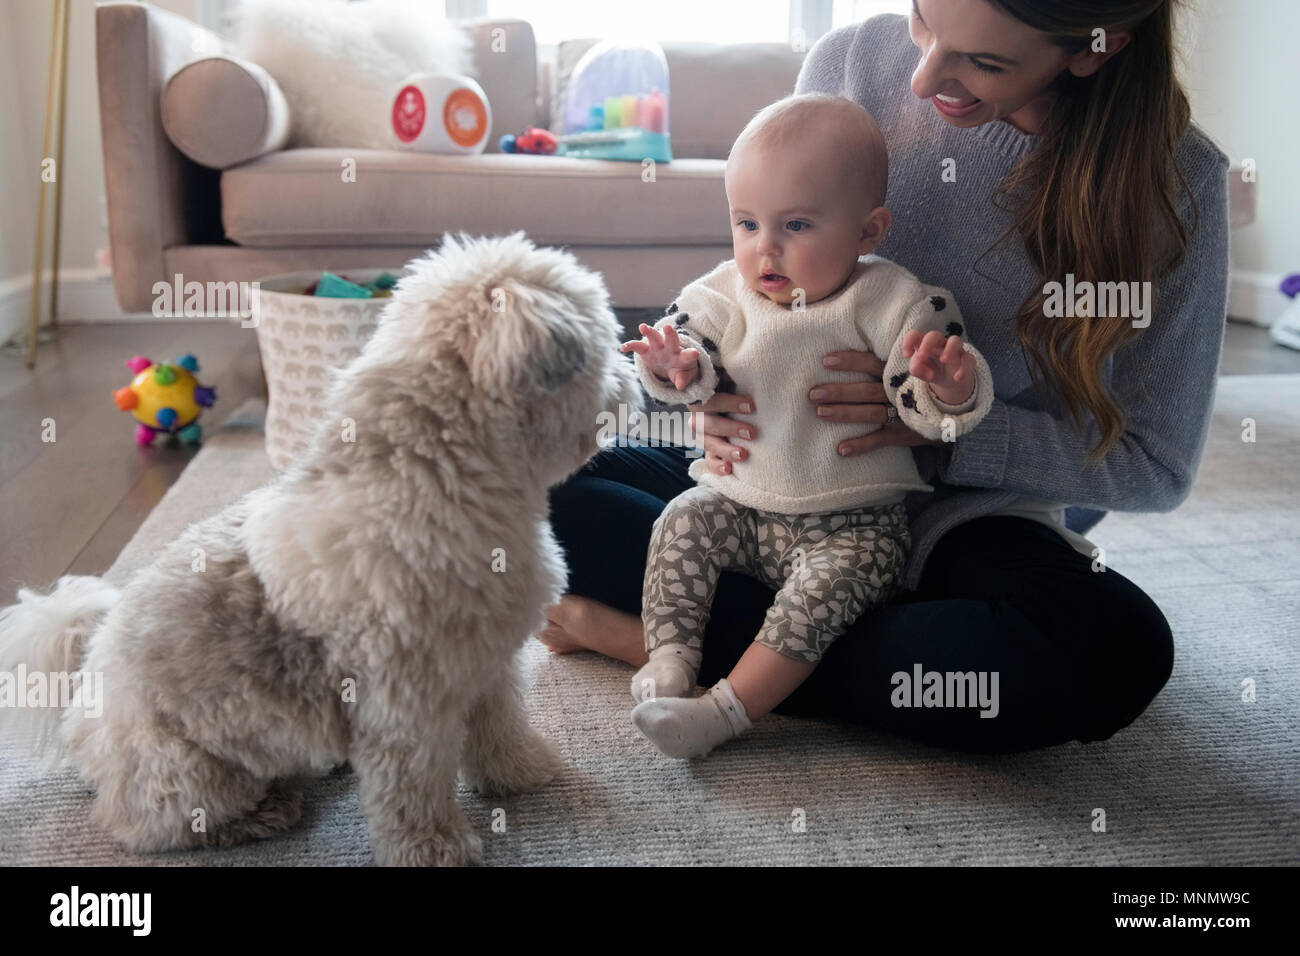 Mother and baby daughter (18-23 months) playing with dog in living room - Stock Image